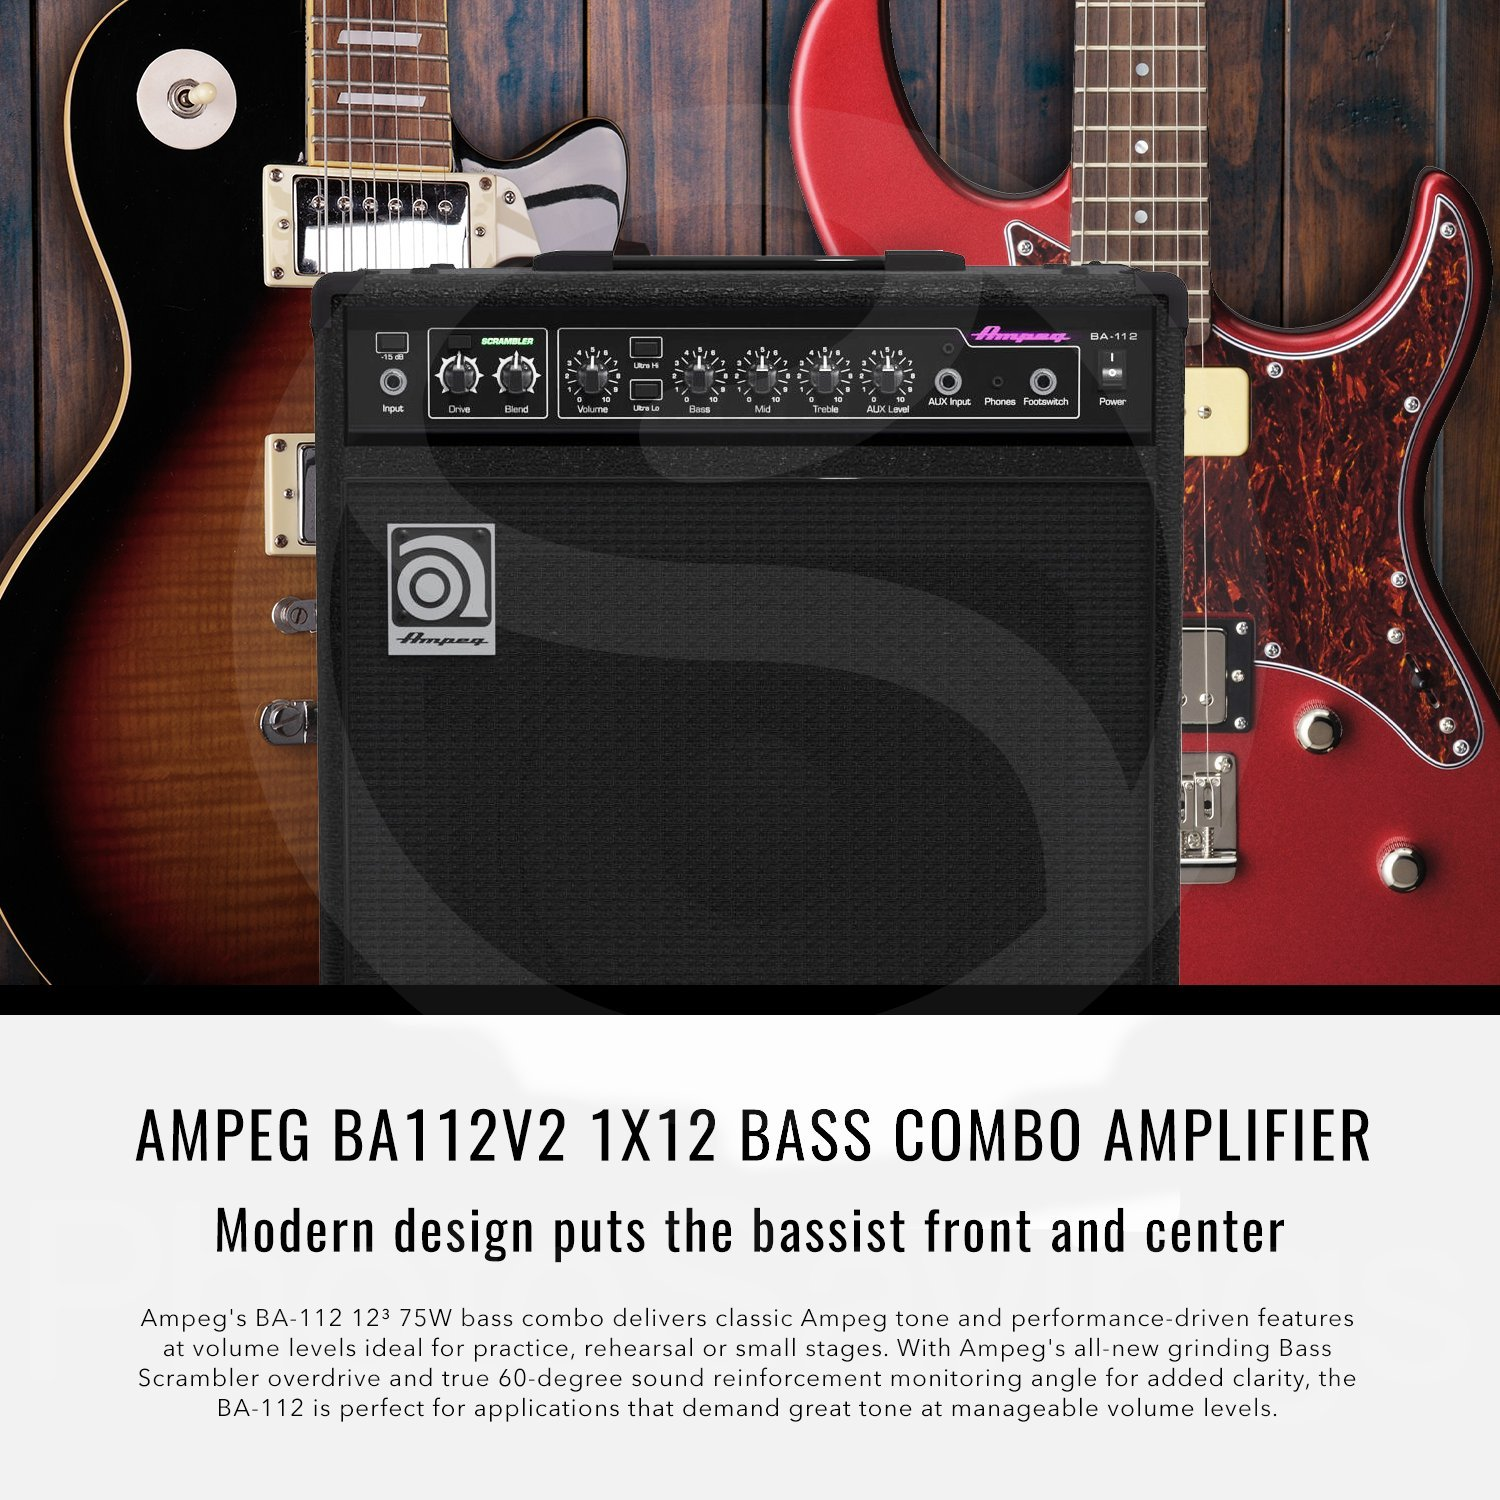 Ampeg Ba 112v2 75w 12 Bass Combo Amplifier And Premium Voice Scrambler Circuit Bundle W Tc Electronic Mojomojo Overdrive Tube Amp Effect Pedal Mixing